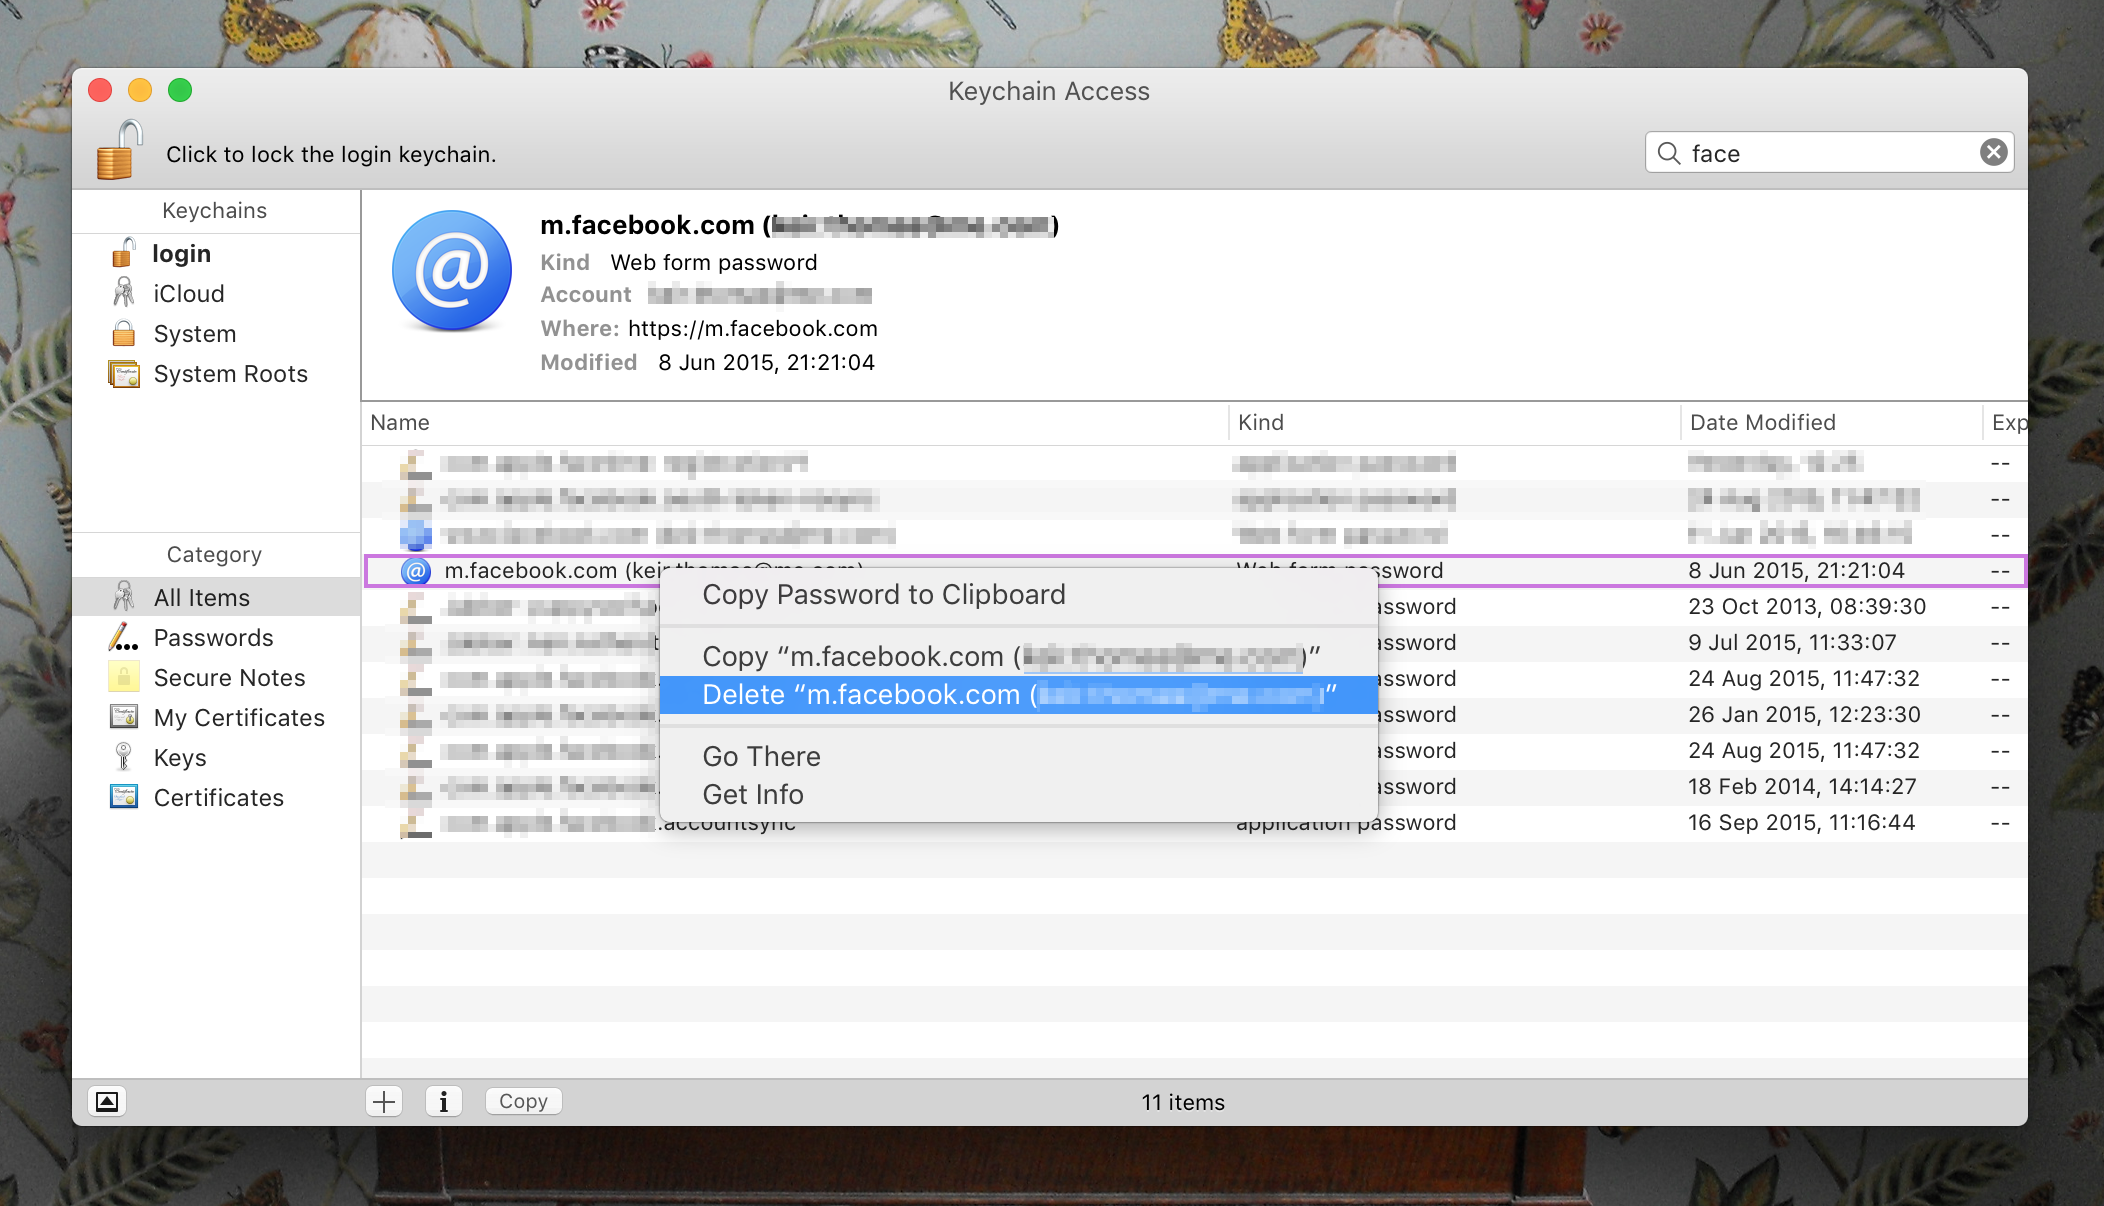 How to clear the cache and history of Safari on Mac: Keychain